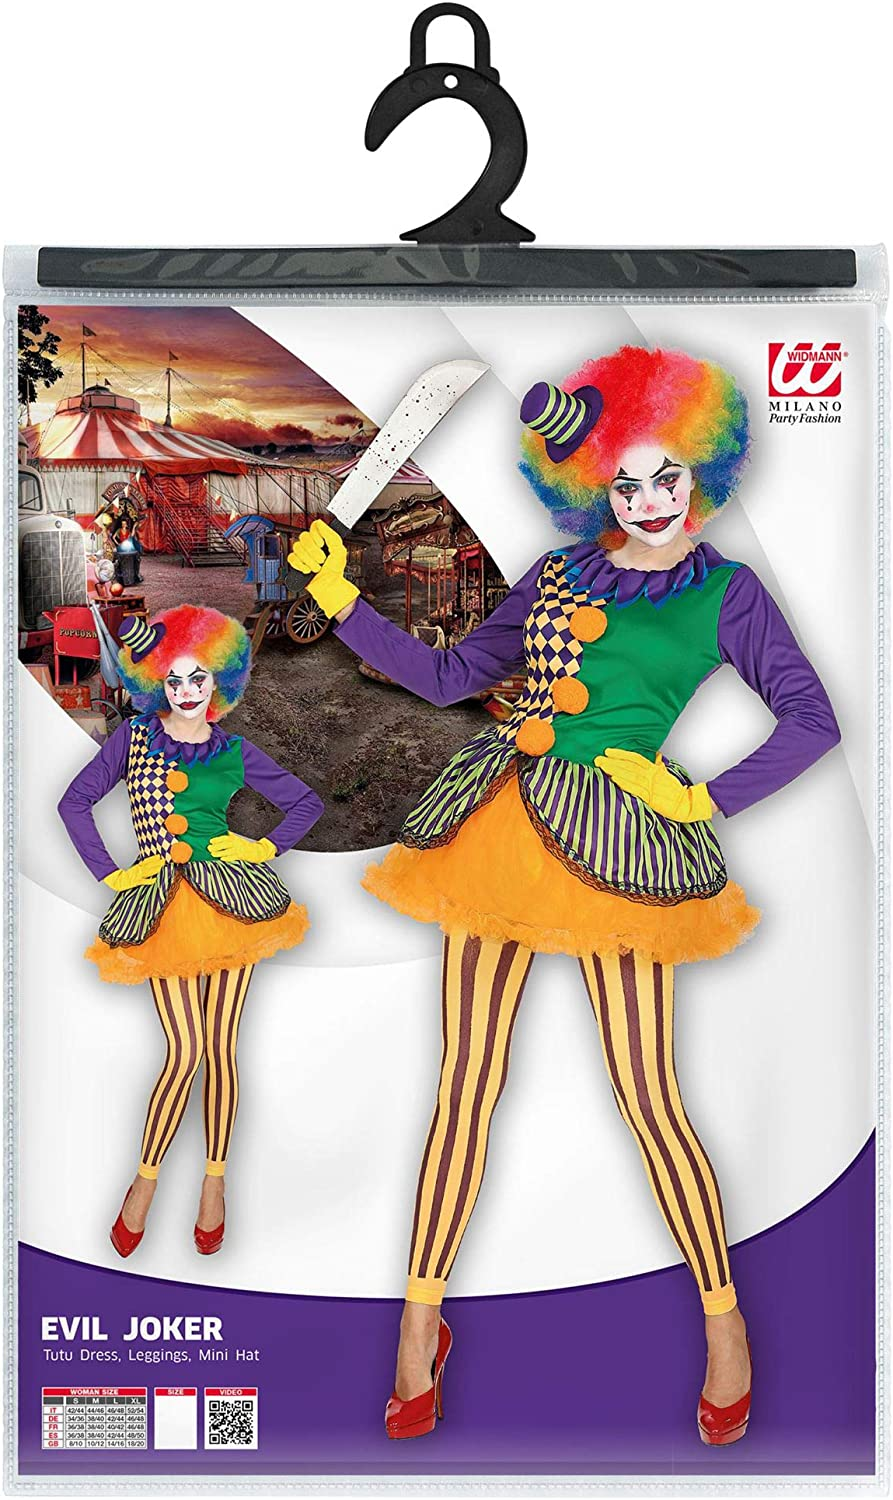 WIDMANN- Evil Joker Disfraz, Multicolor, S (02851): Amazon.es ...